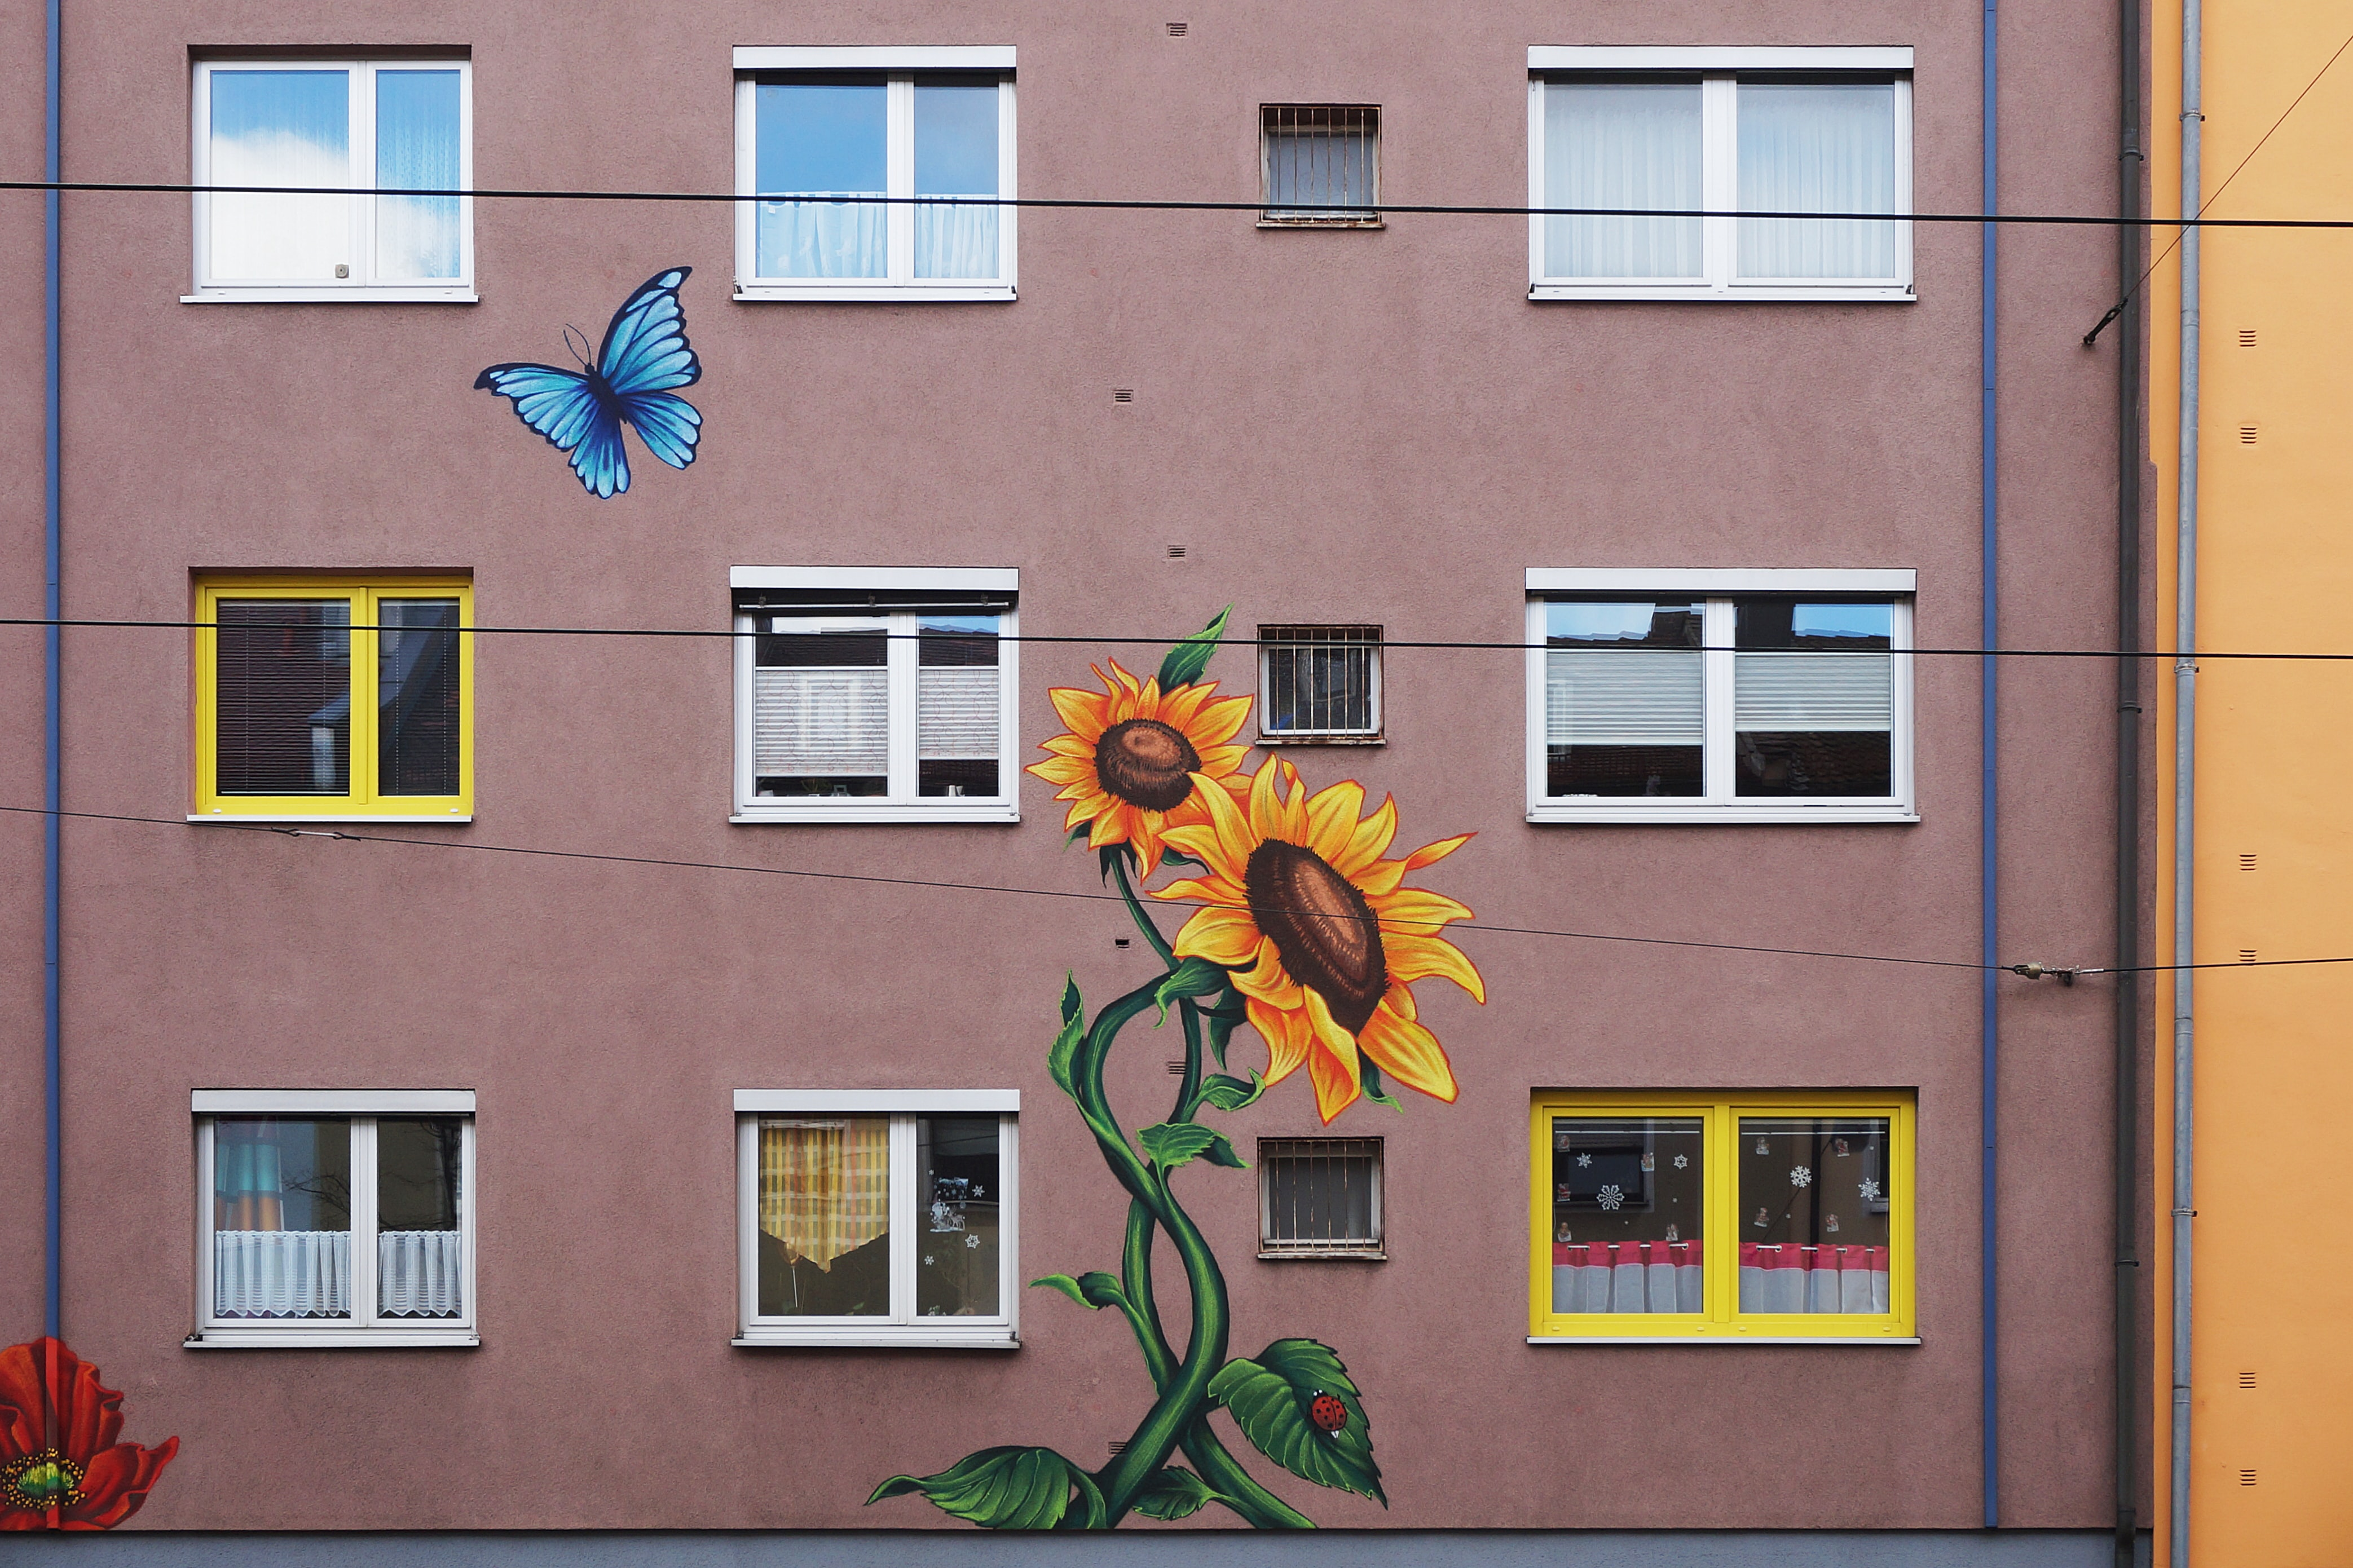 oran ge sunflower paint on building